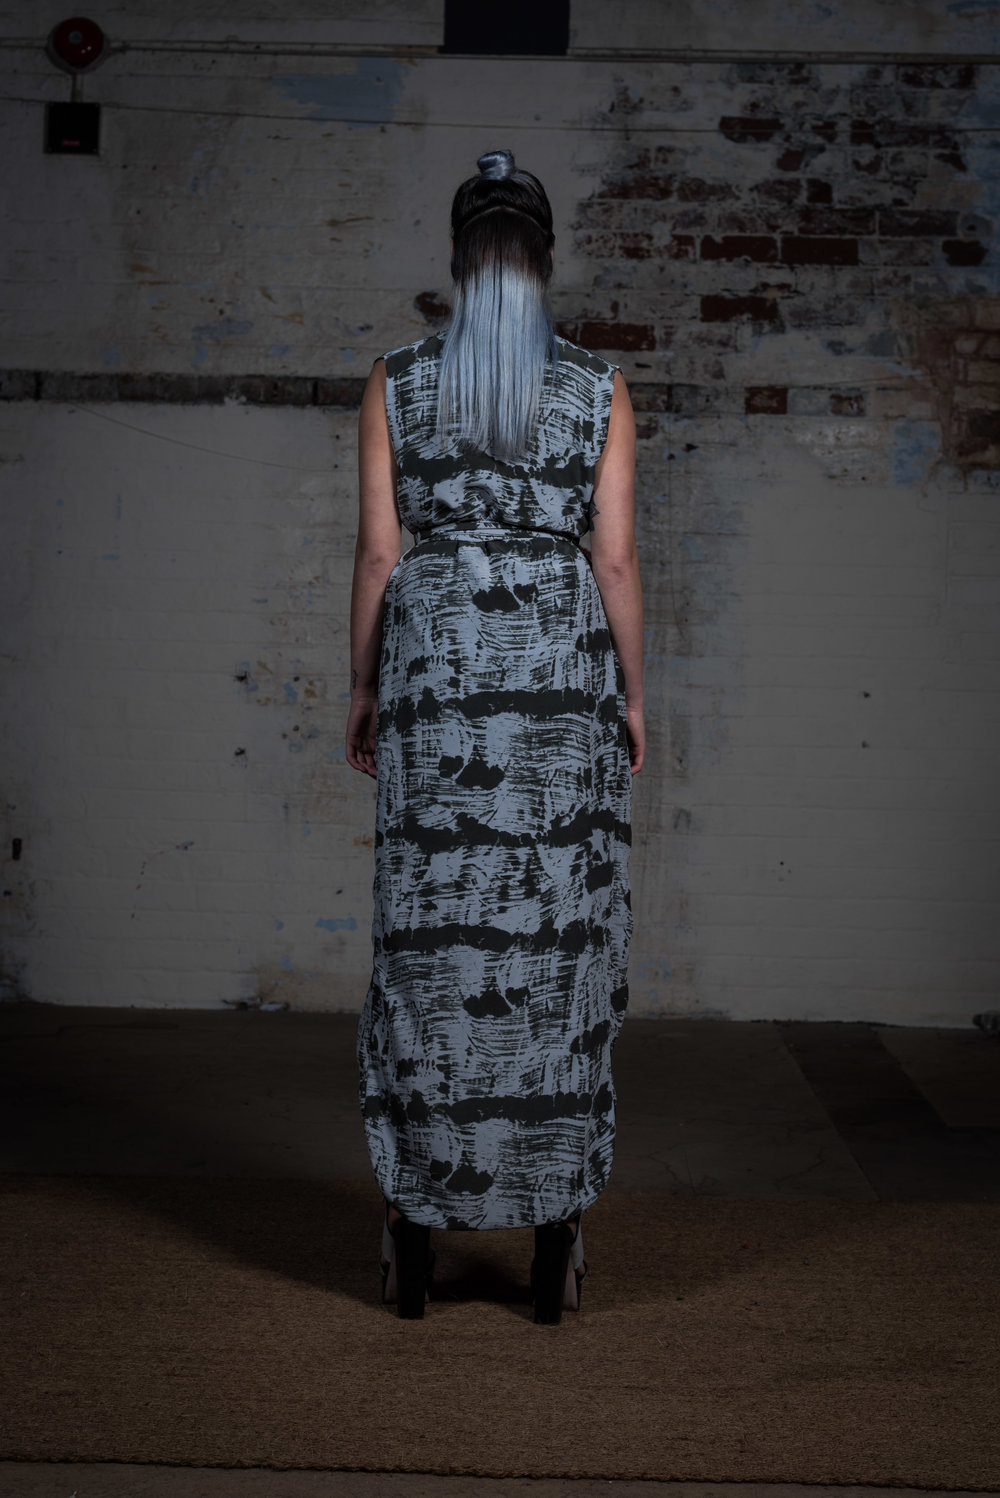 zaramia-ava-zaramiaava-leeds-fashion-designer-ethical-sustainable-sora-maxi-minimalist-print-dress-versatile-drape-skirt-grey-yuko-cowl-dress-styling-location-womenswear-models-photoshoot-21